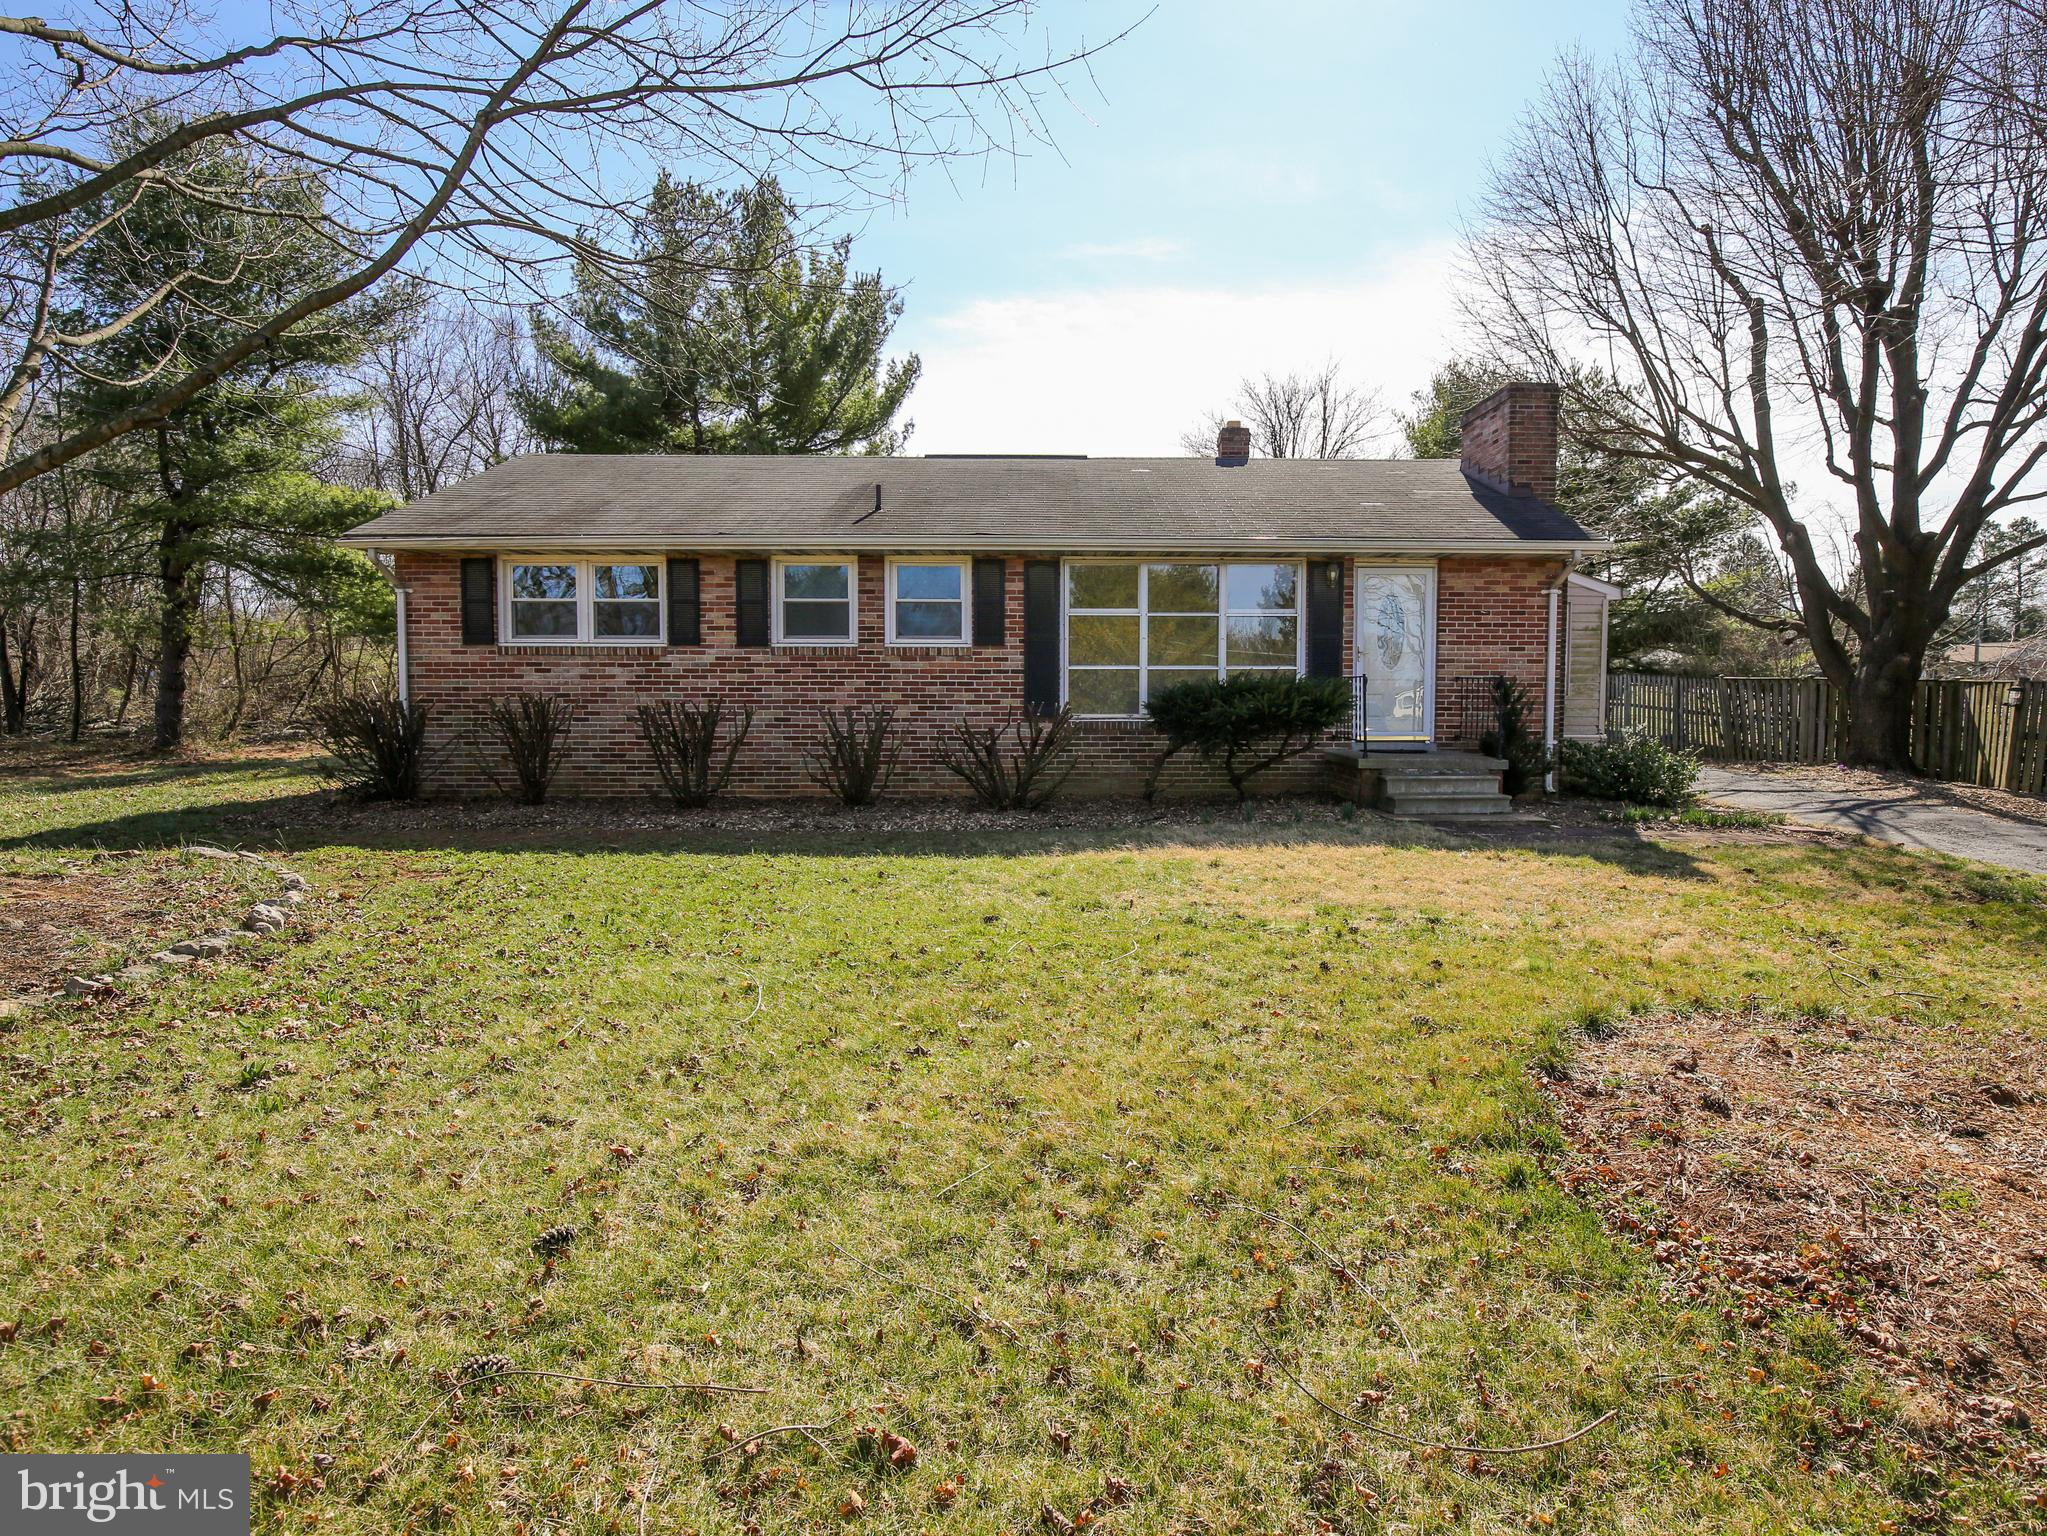 If a convenient location and one-level living are what you're after, look no further! This all-brick